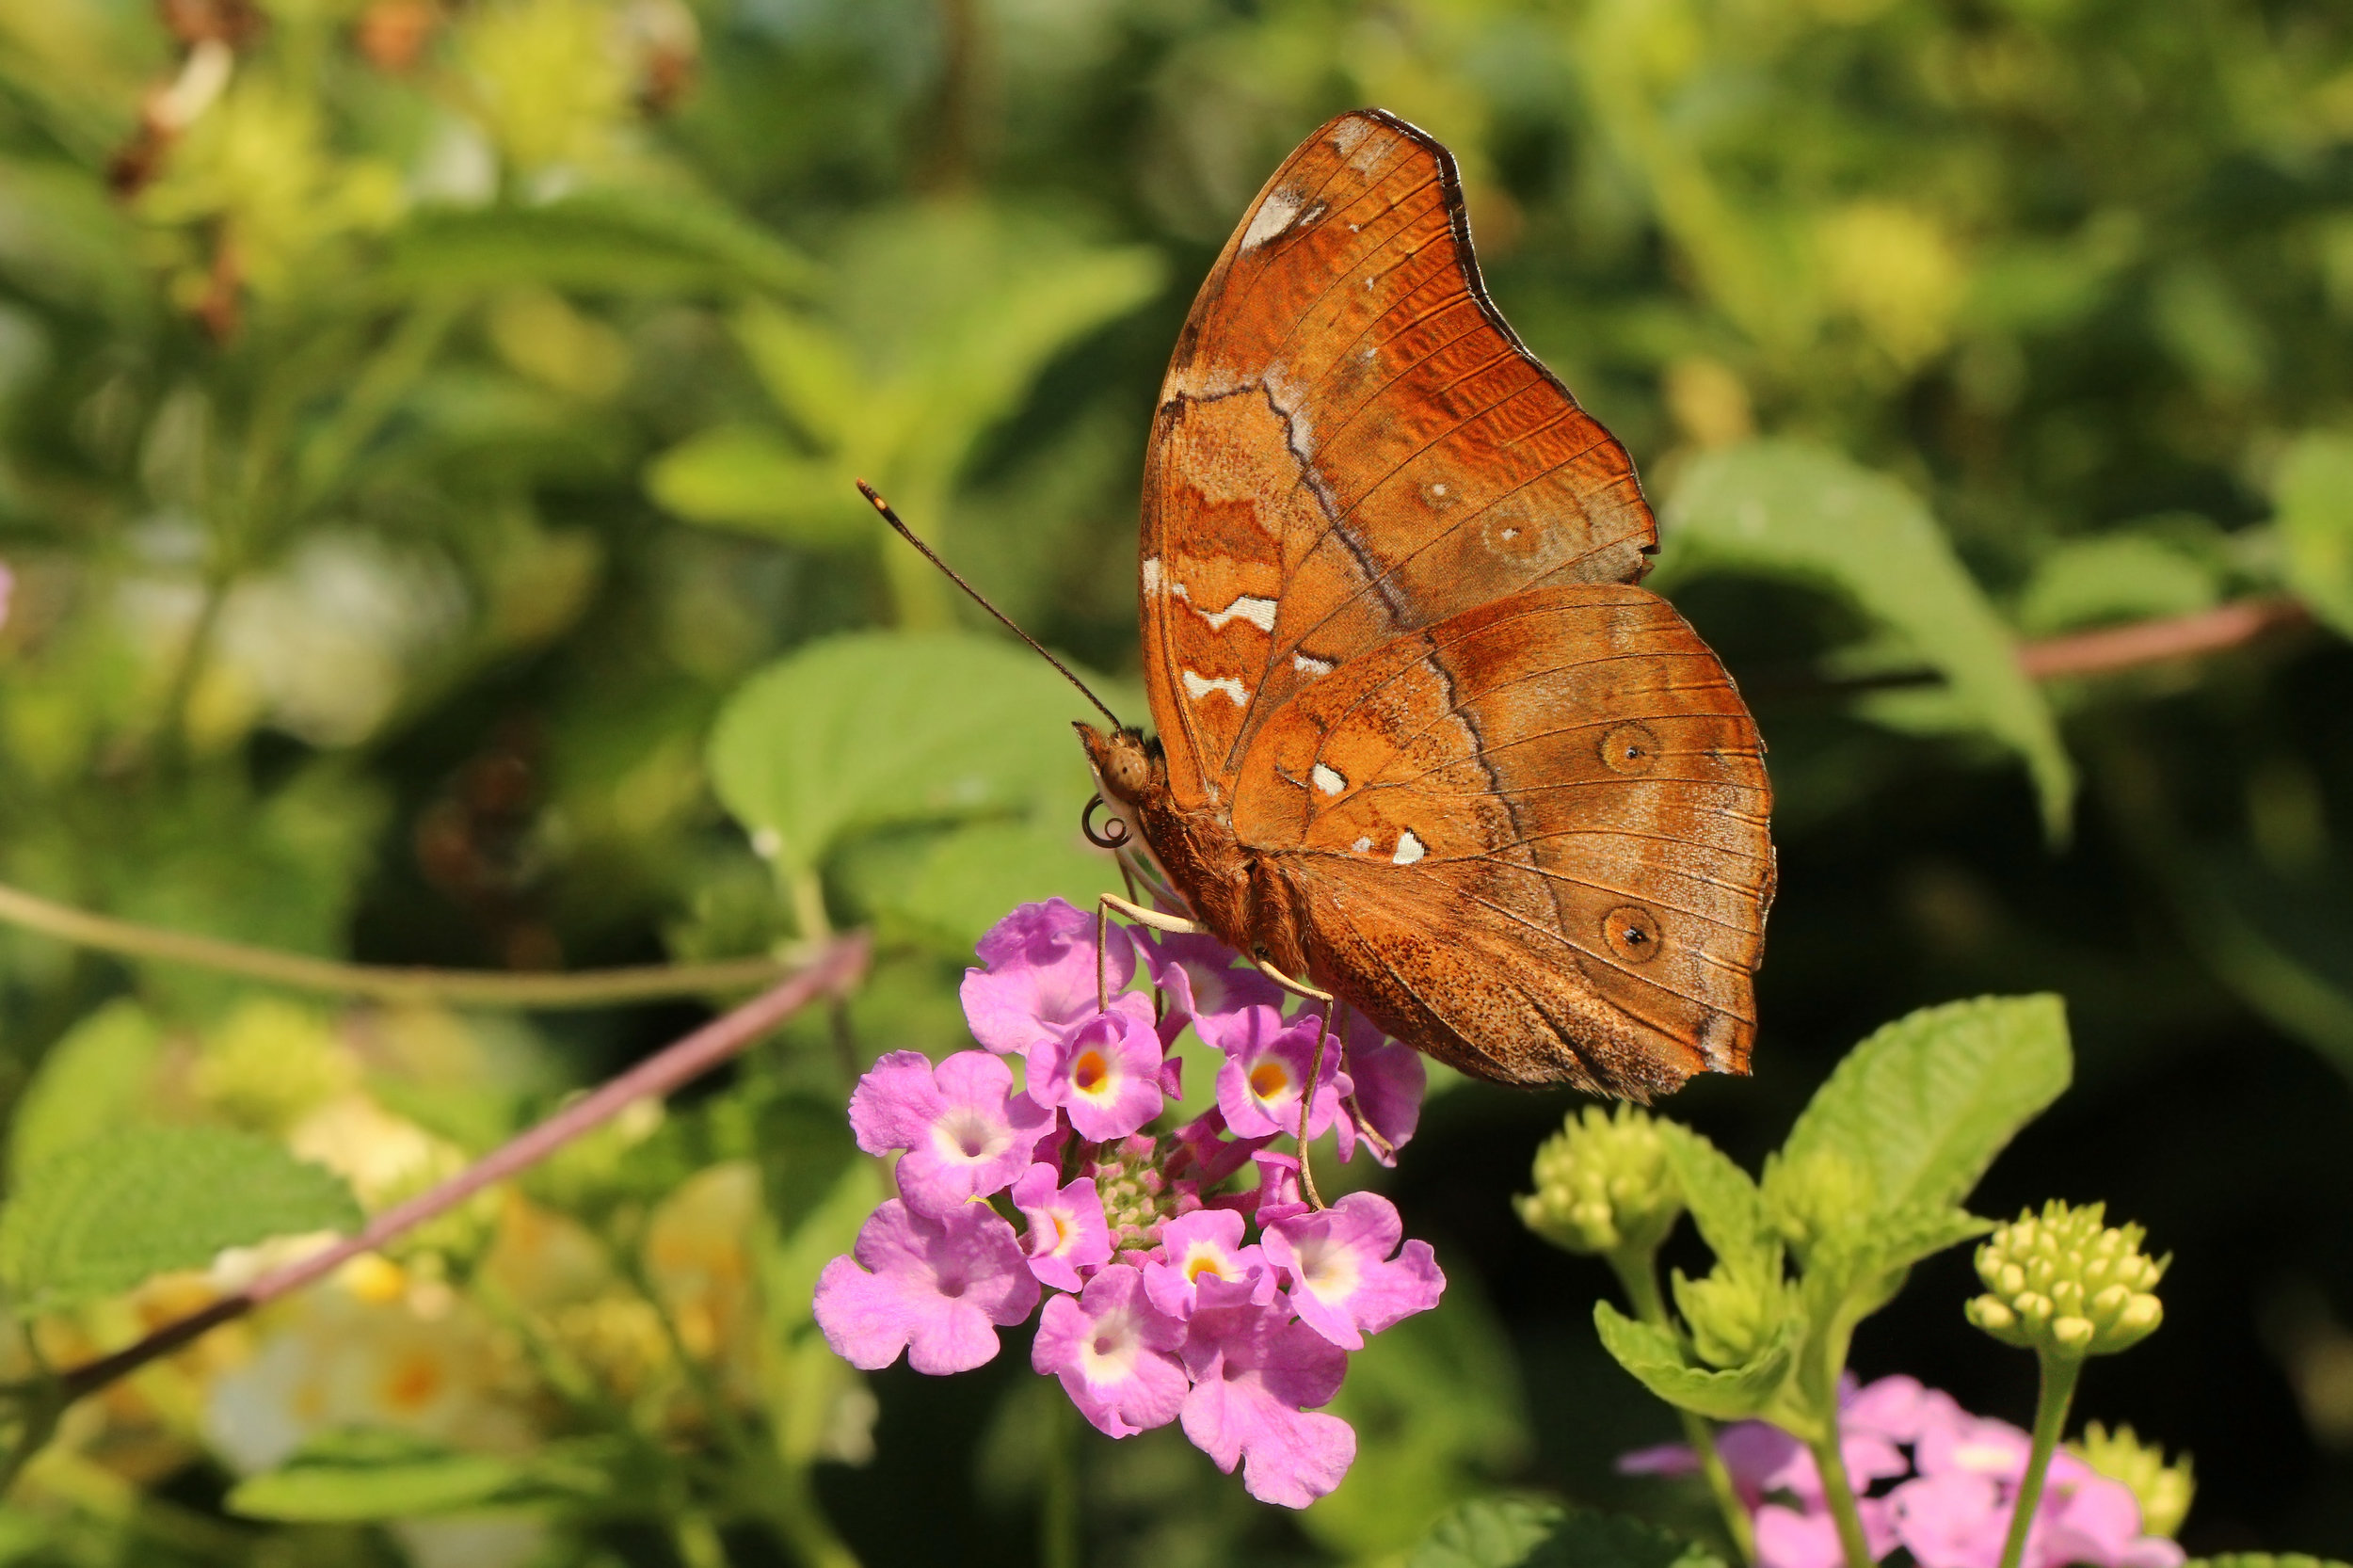 """The Autumn Leaf, a butterfly found in India and some parts of Australia, of the Nymphalid family, the largest family of butterflies. Photo taken in Bali, India and """"Autumn Leaf"""" by Charles Sharp is licensed under  CC BY-SA 4.0"""